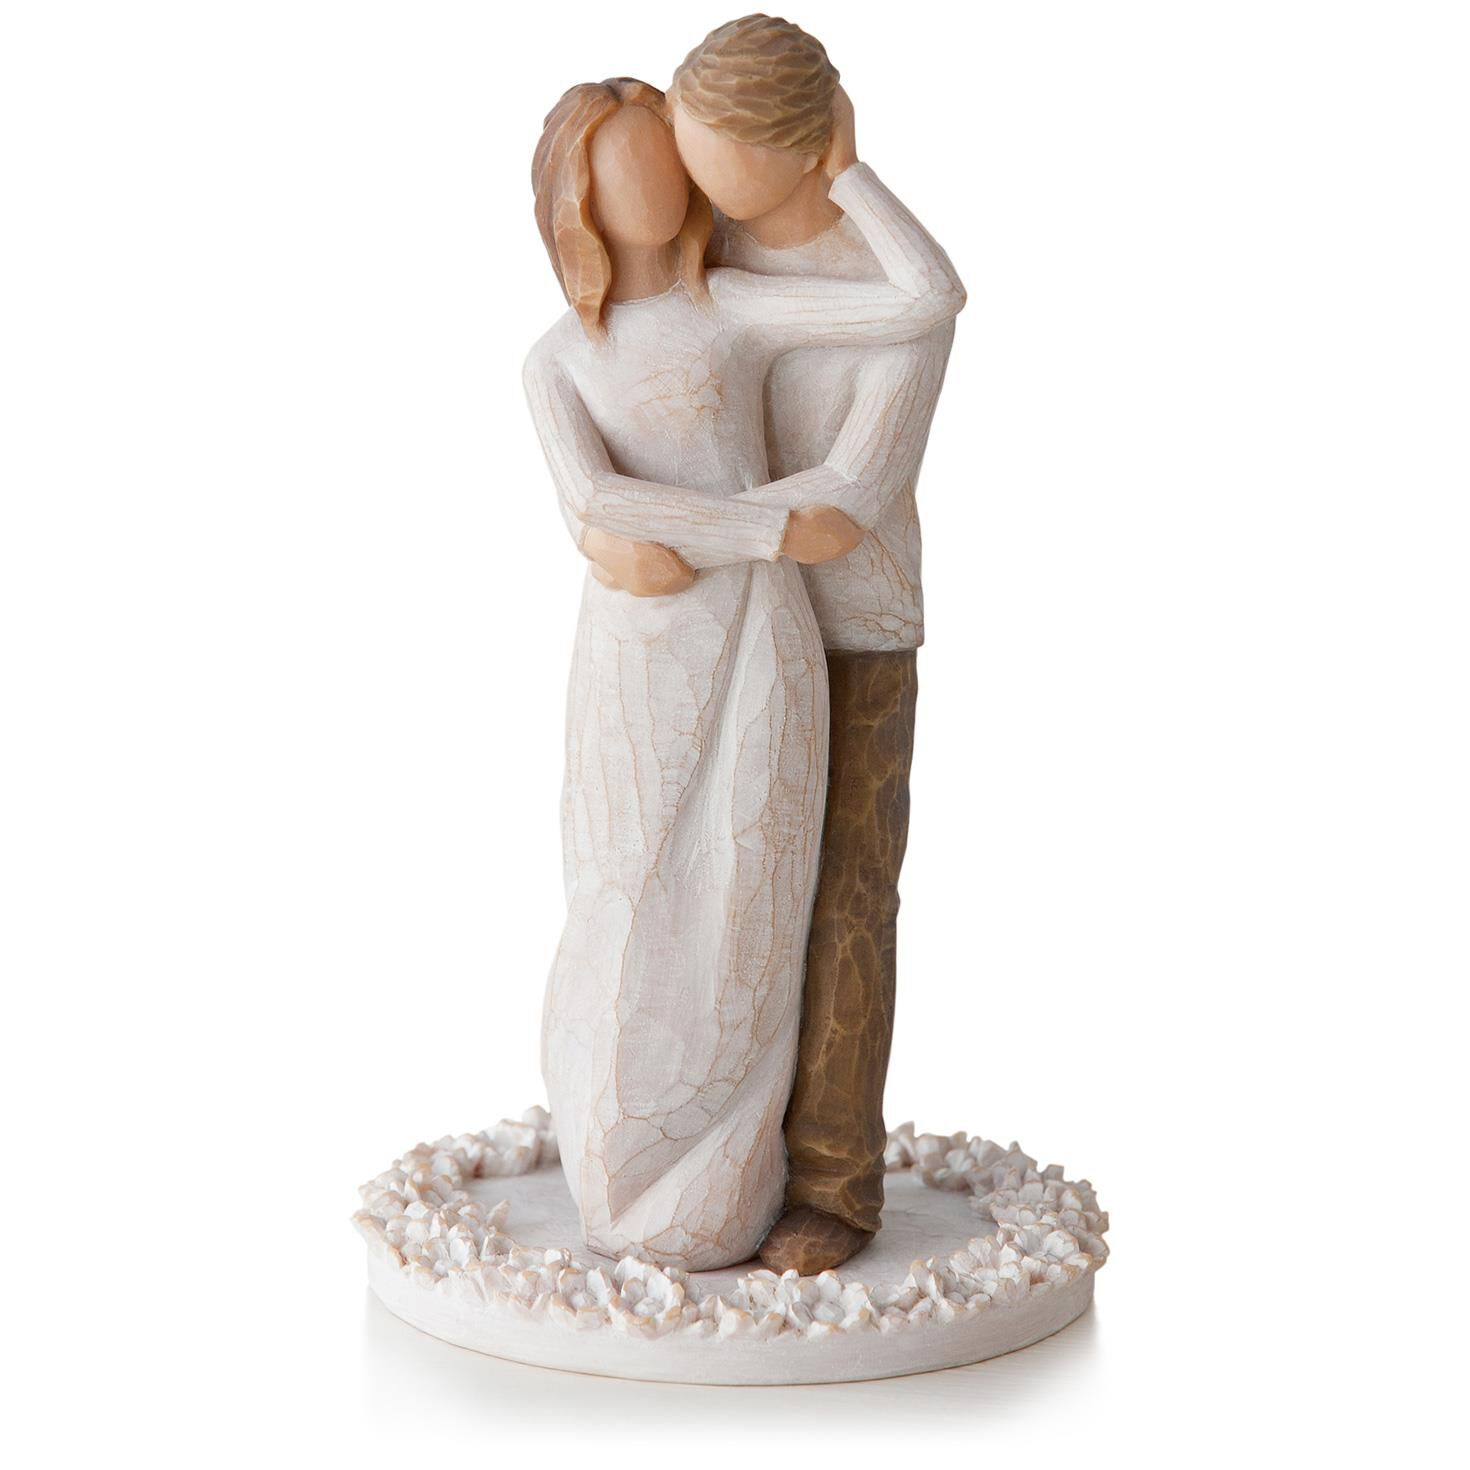 willow tree together wedding cake topper figurine figurines